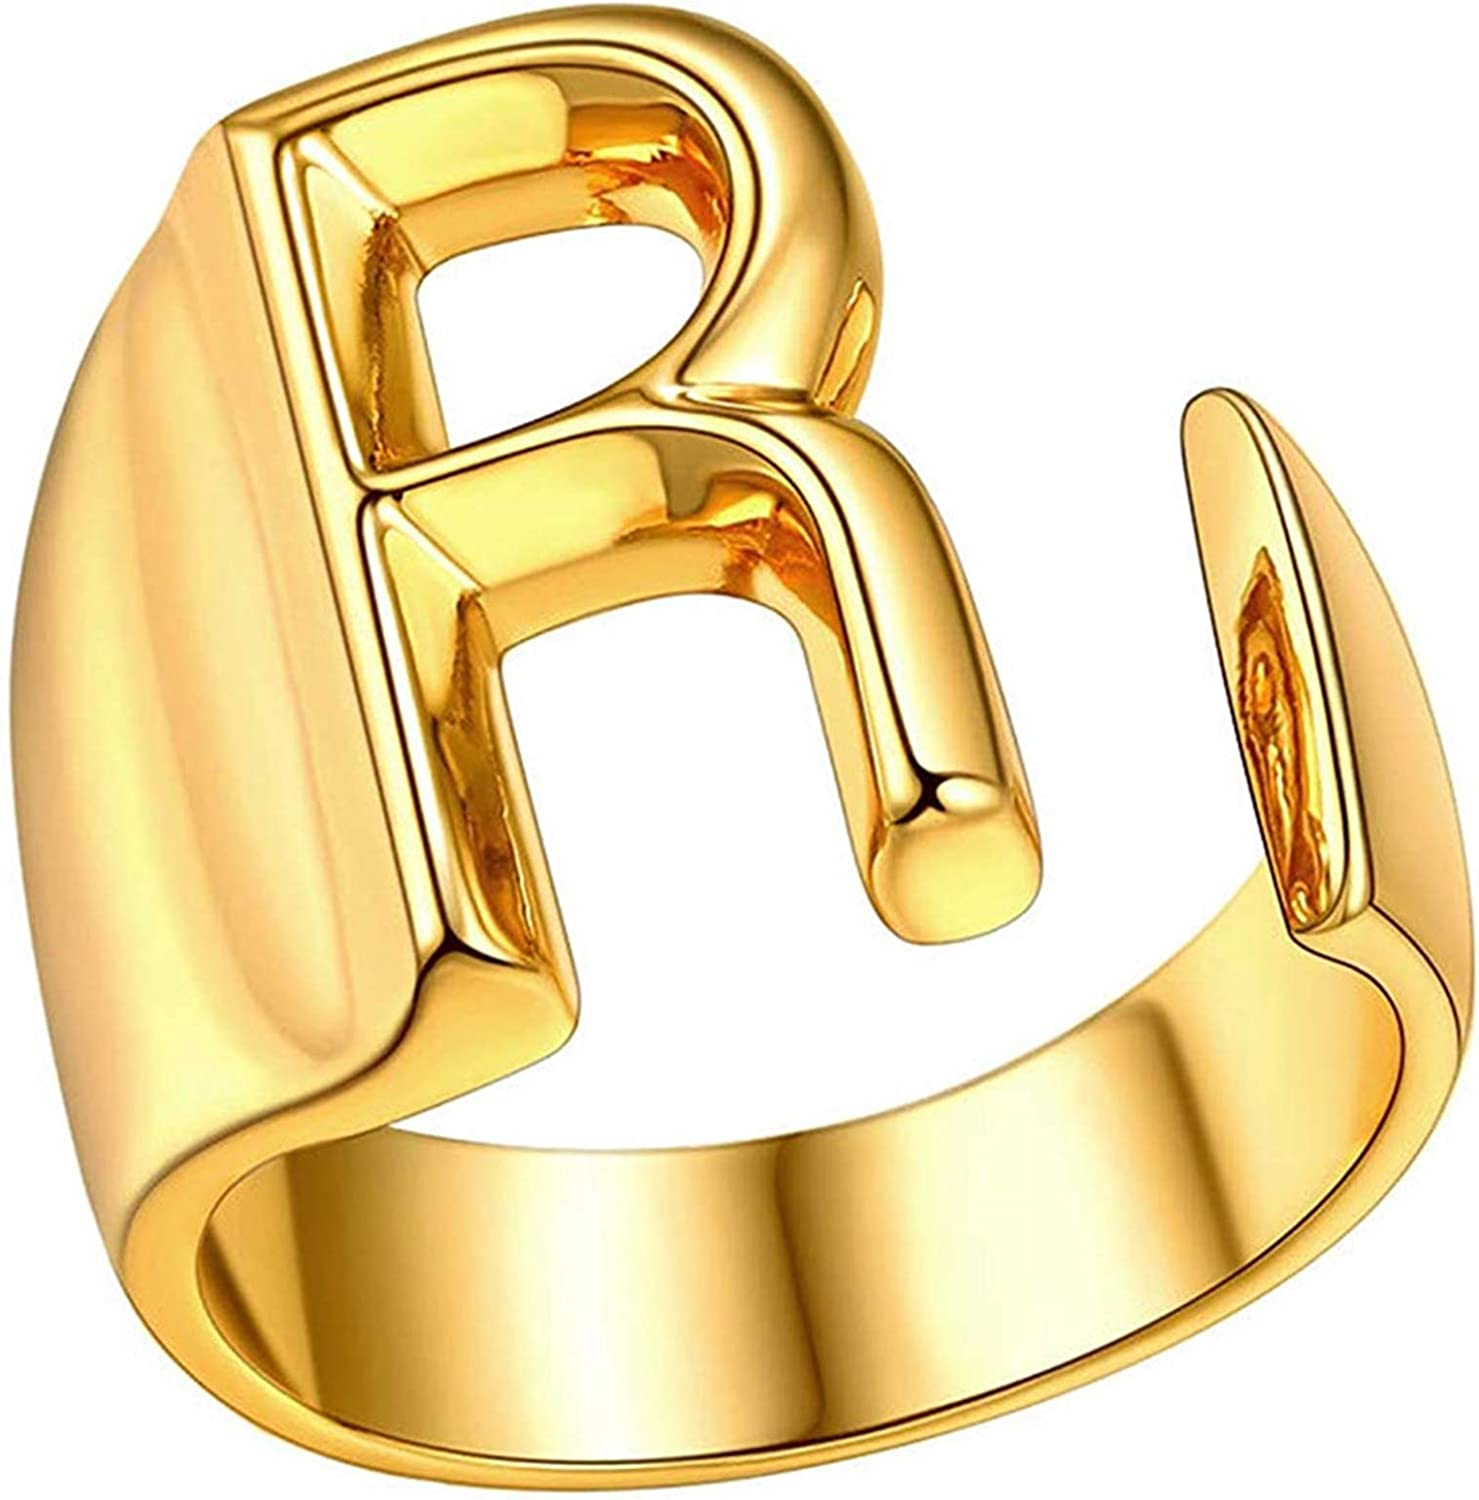 Initial Ring,Letter Rings for Women,Gold Plated Adjustable Open Ring Bold Statement Alphabet Rings Letter A to Z Chic Jewelry